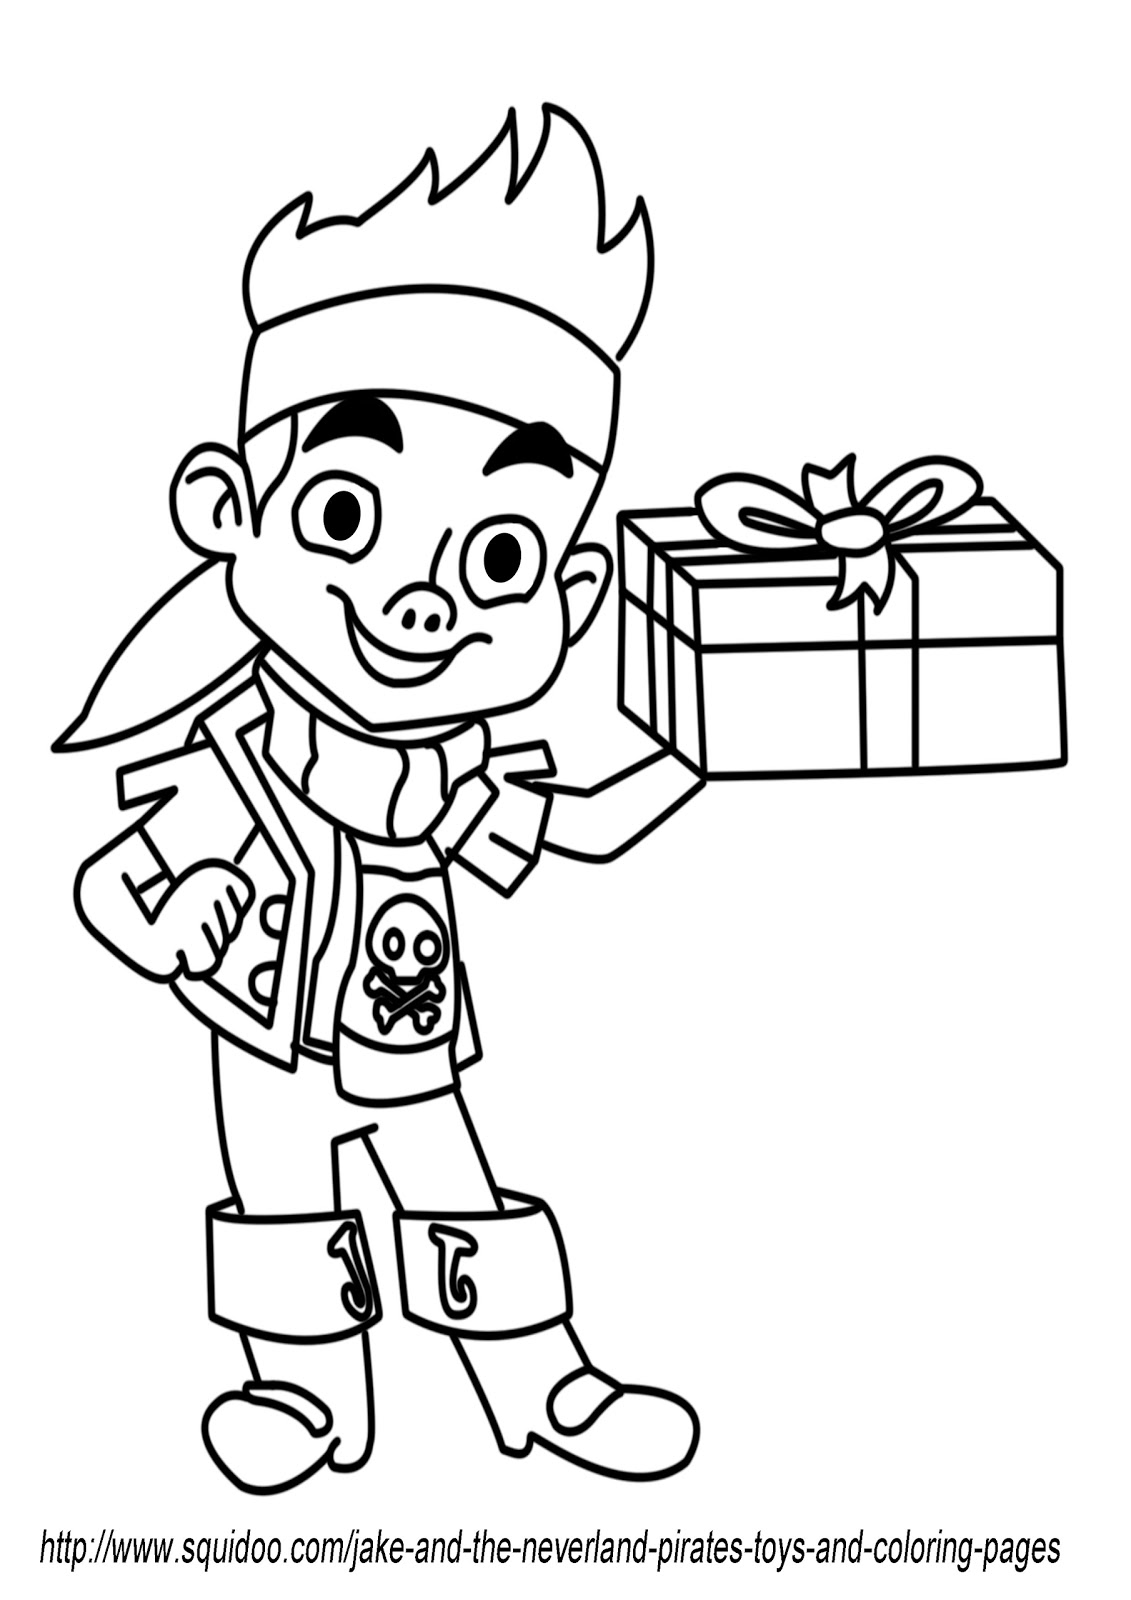 Jake and the neverland pirates toys and coloring pages for Jake the pirate coloring pages